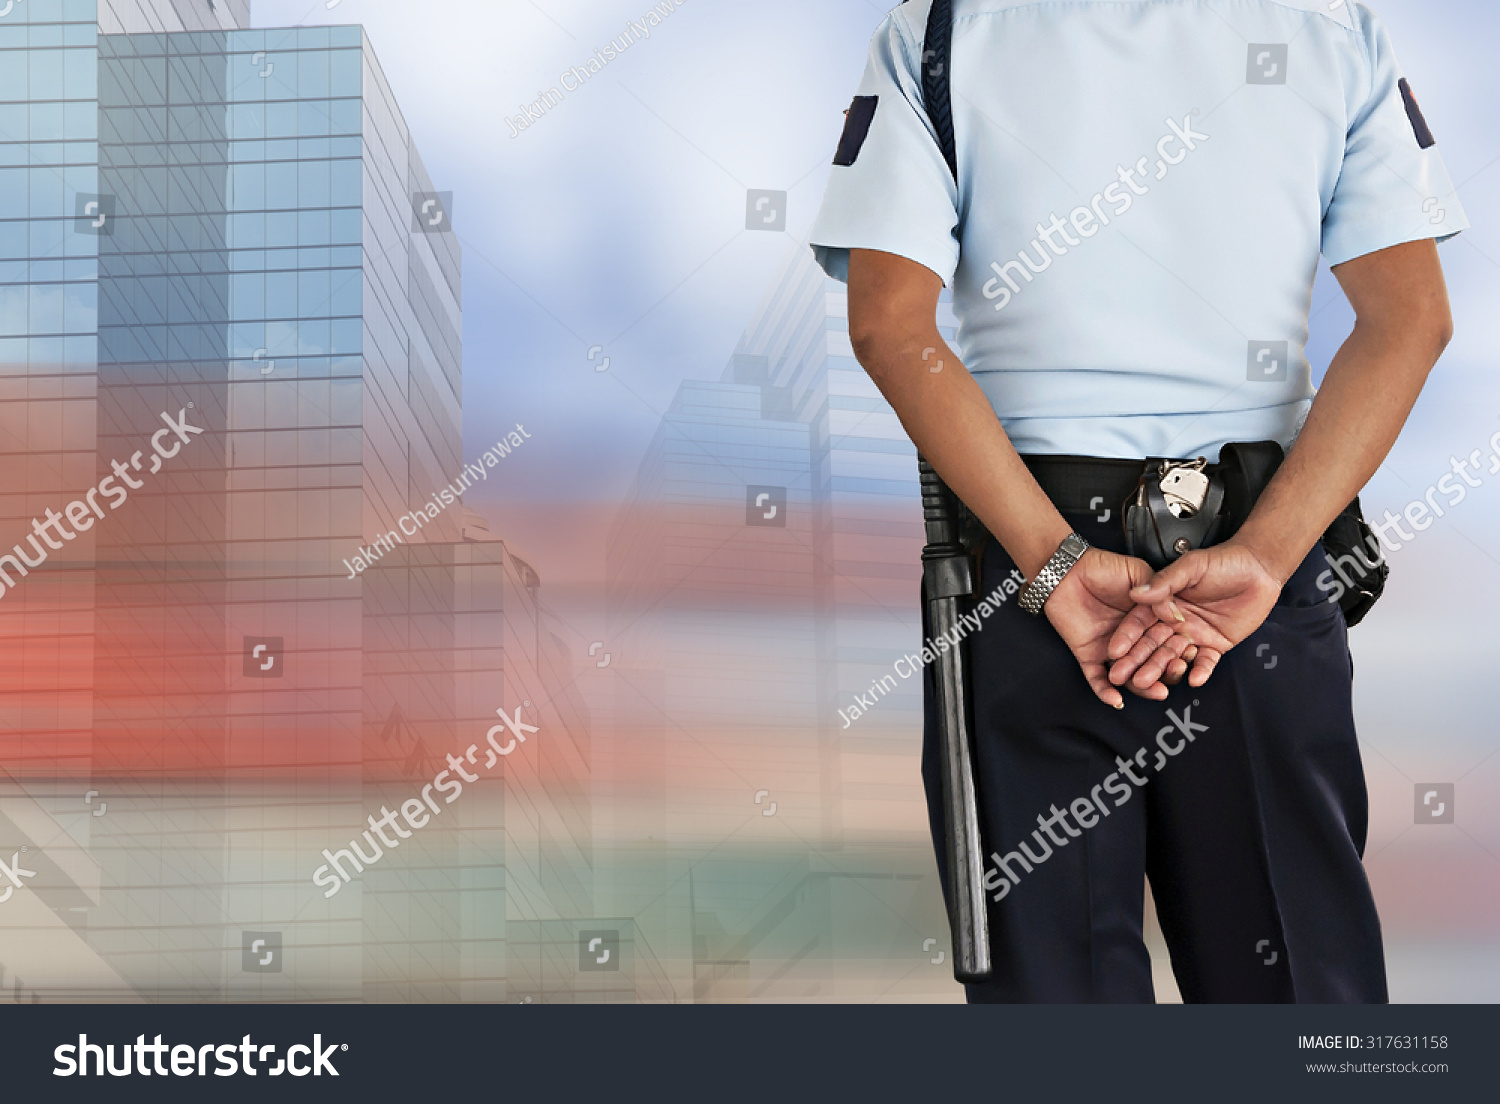 Security guard stock photo 317631158 shutterstock - Security guard hd images ...